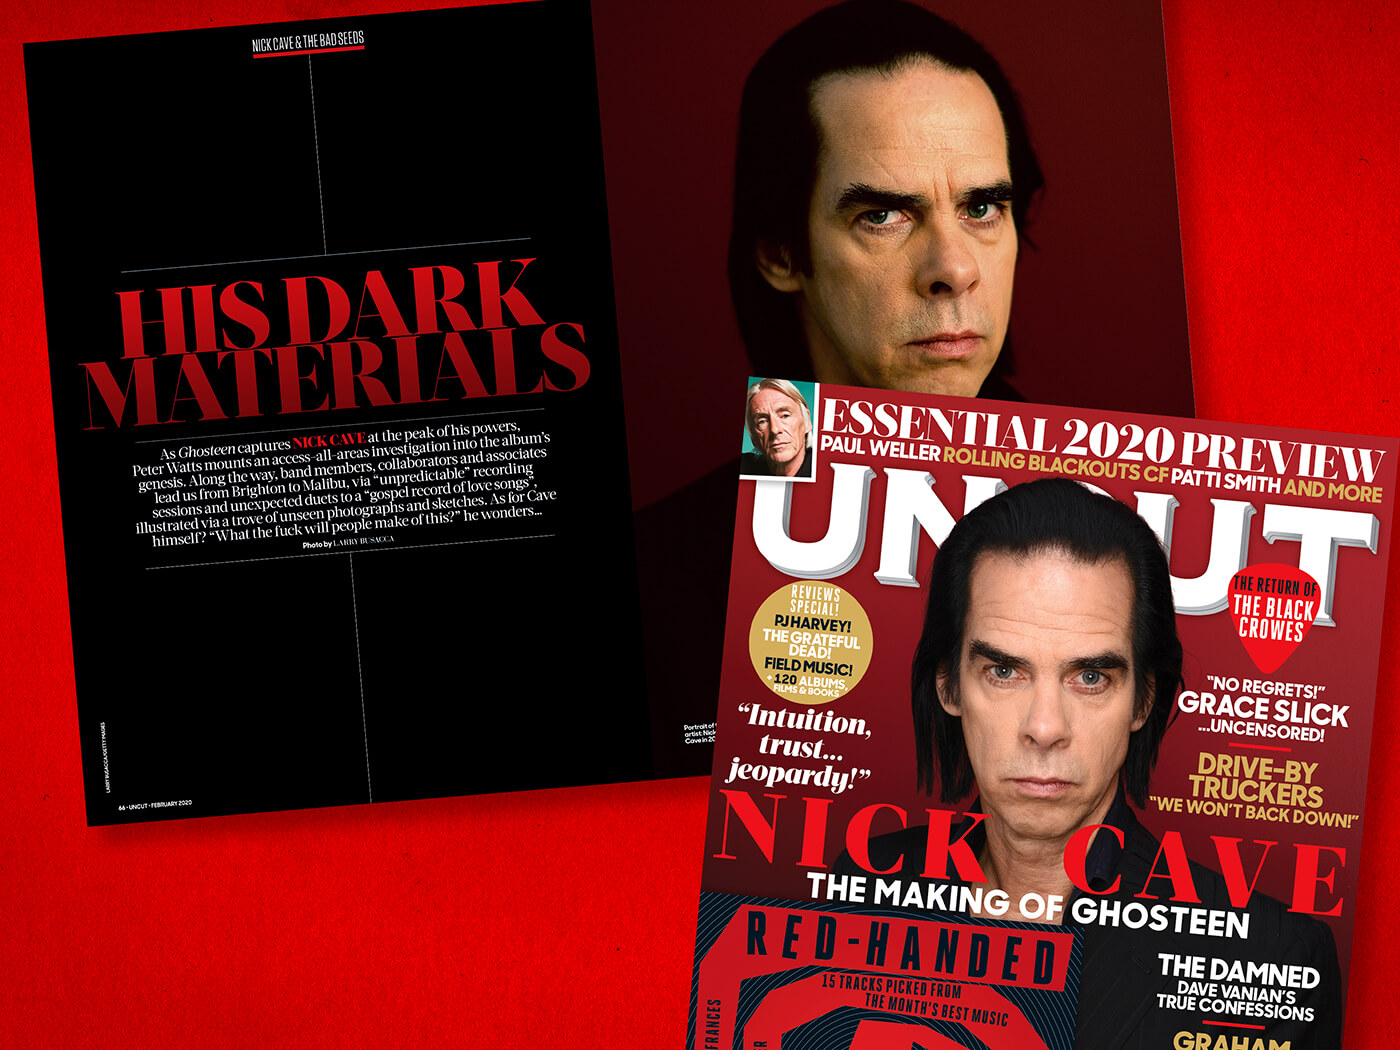 Nick Cave: the mysteries of Ghosteen revealed in the new Uncut!